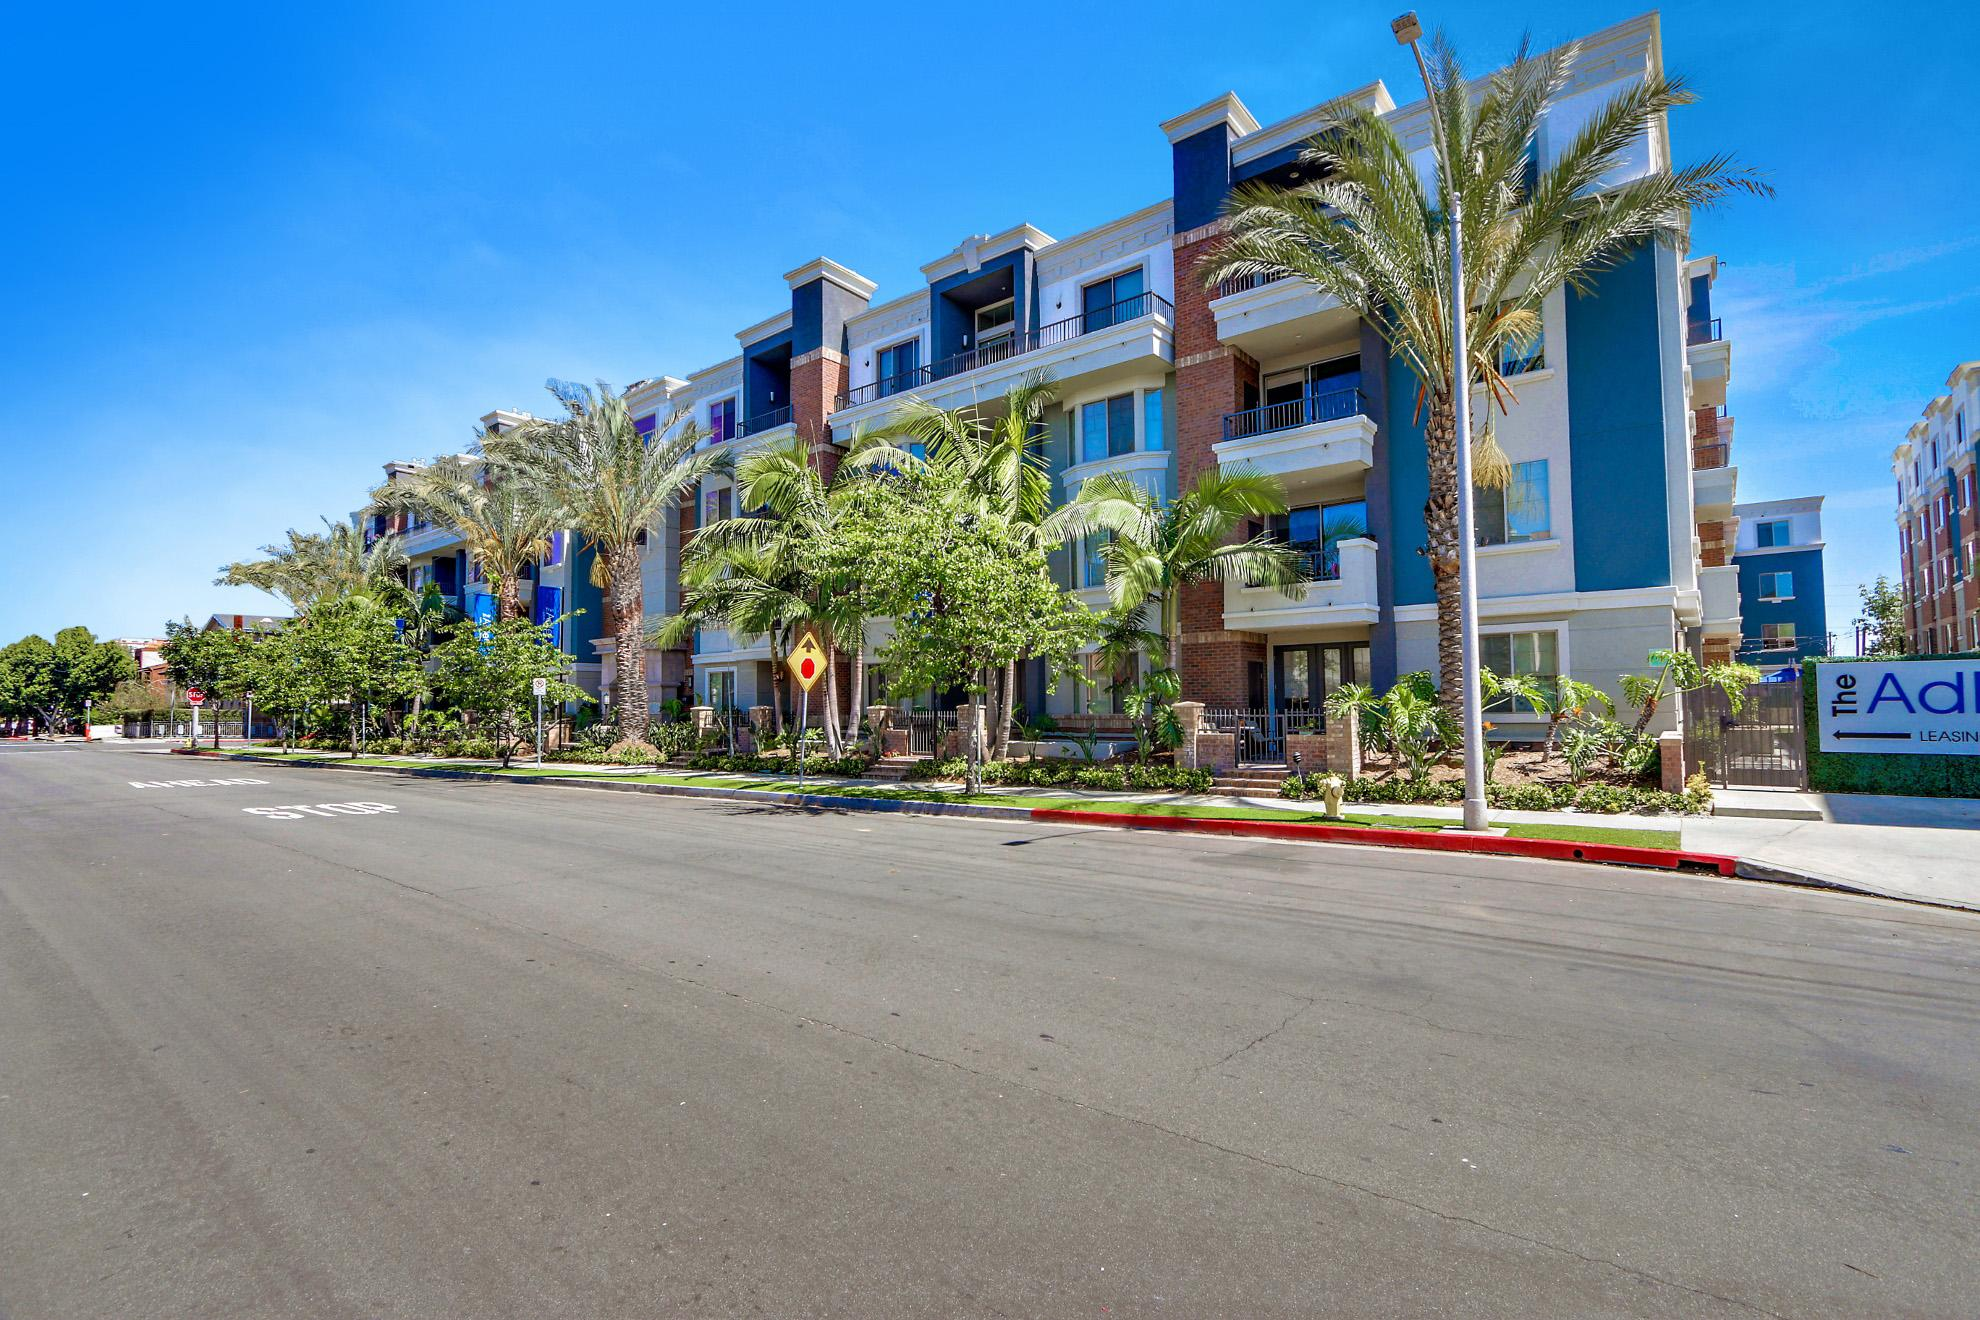 11950 And 12000 Idaho Ave #1-319R, Los Angeles, CA - 4,440 USD/ month